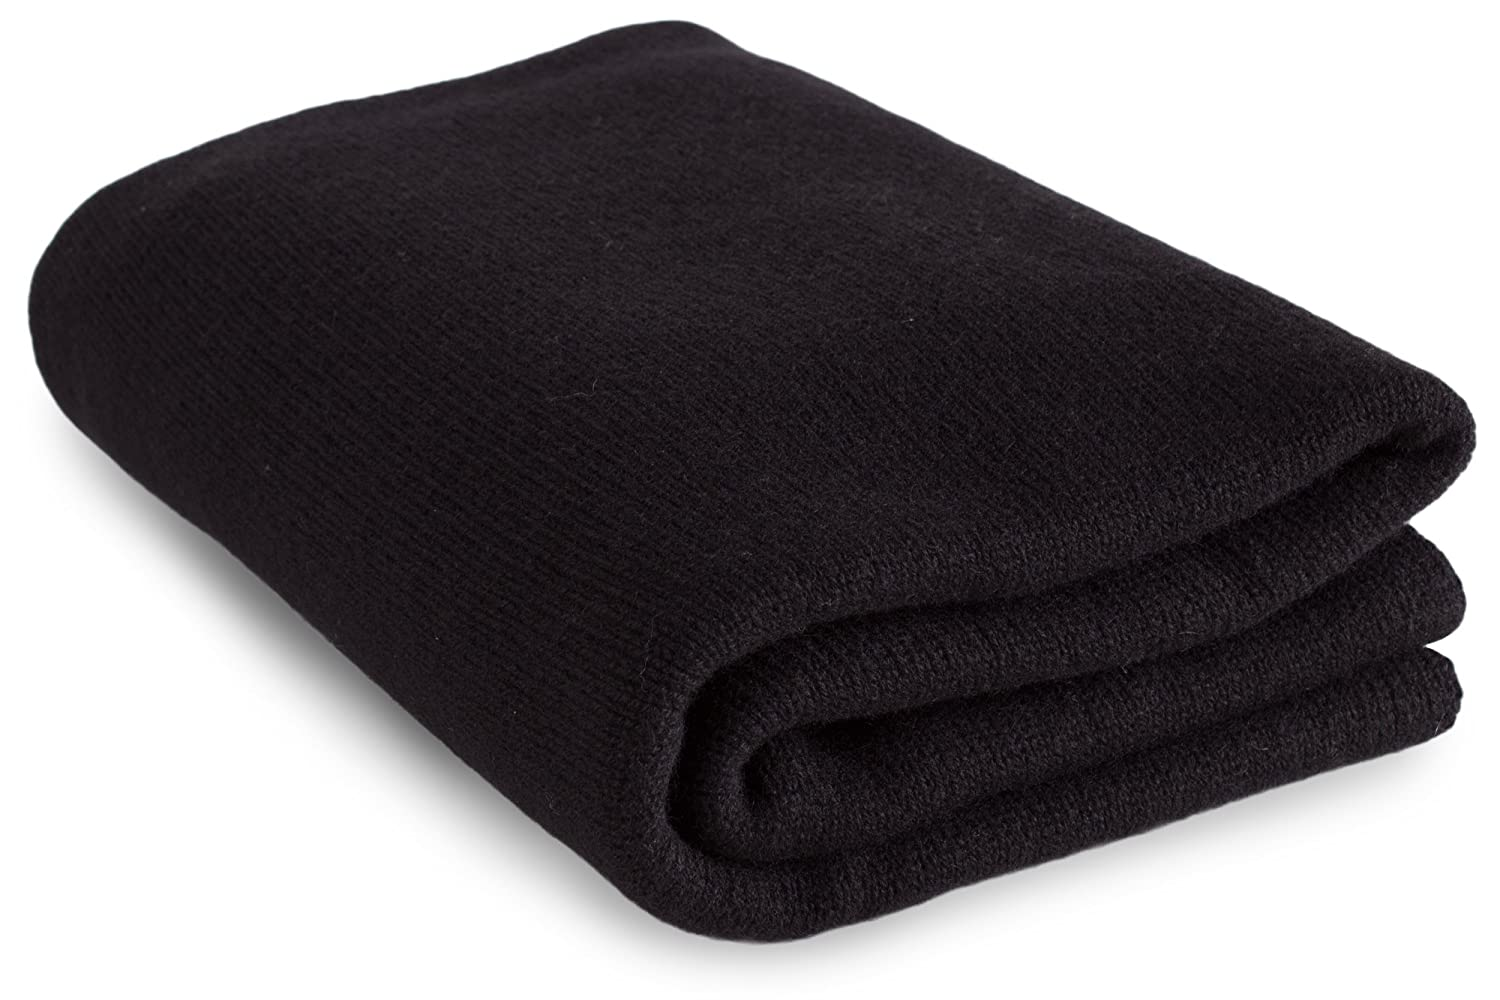 luxury  cashmere travel wrap blanket  black  made in  - luxury  cashmere travel wrap blanket  black  made in scotland by lovecashmere  rrp £ amazoncouk clothing